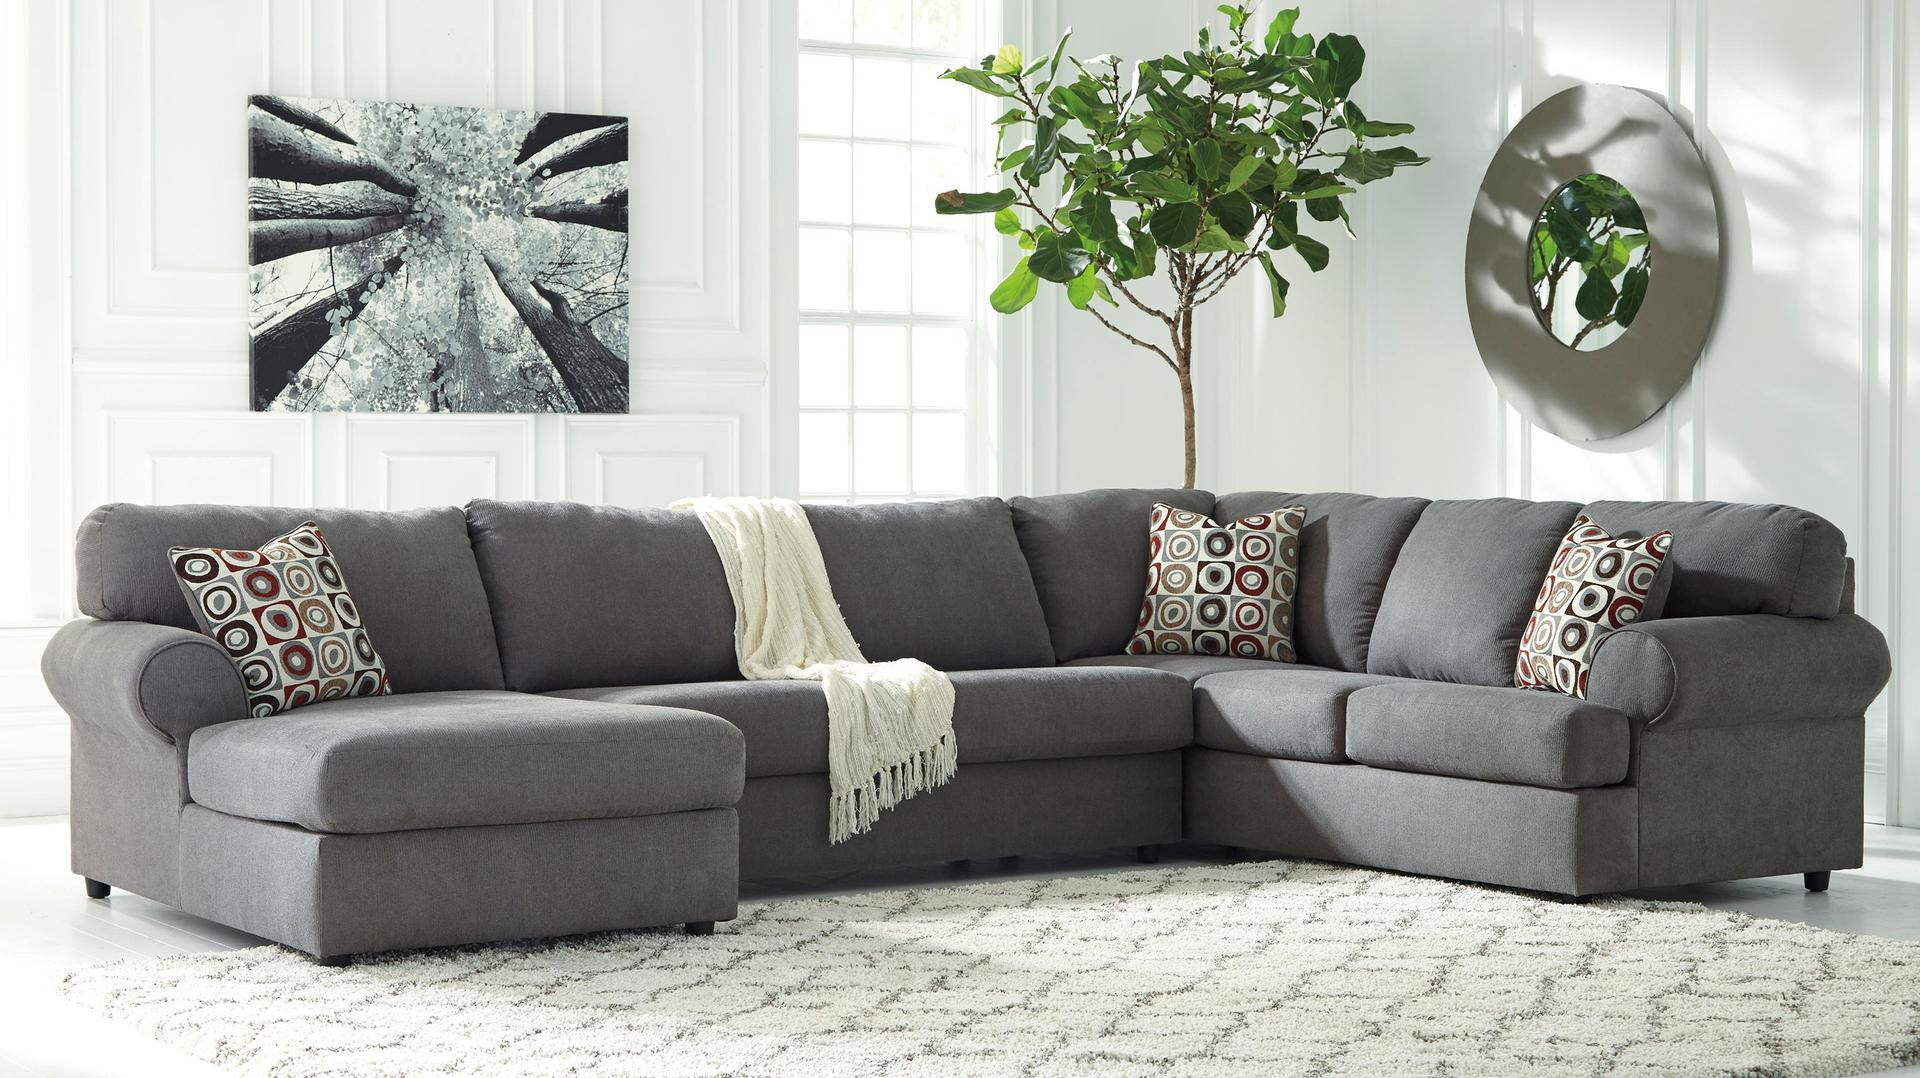 Destin Leather Piece Sectional Sofa With Power Recliners Couch With Well Liked Meyer 3 Piece Sectionals With Laf Chaise (Gallery 15 of 20)